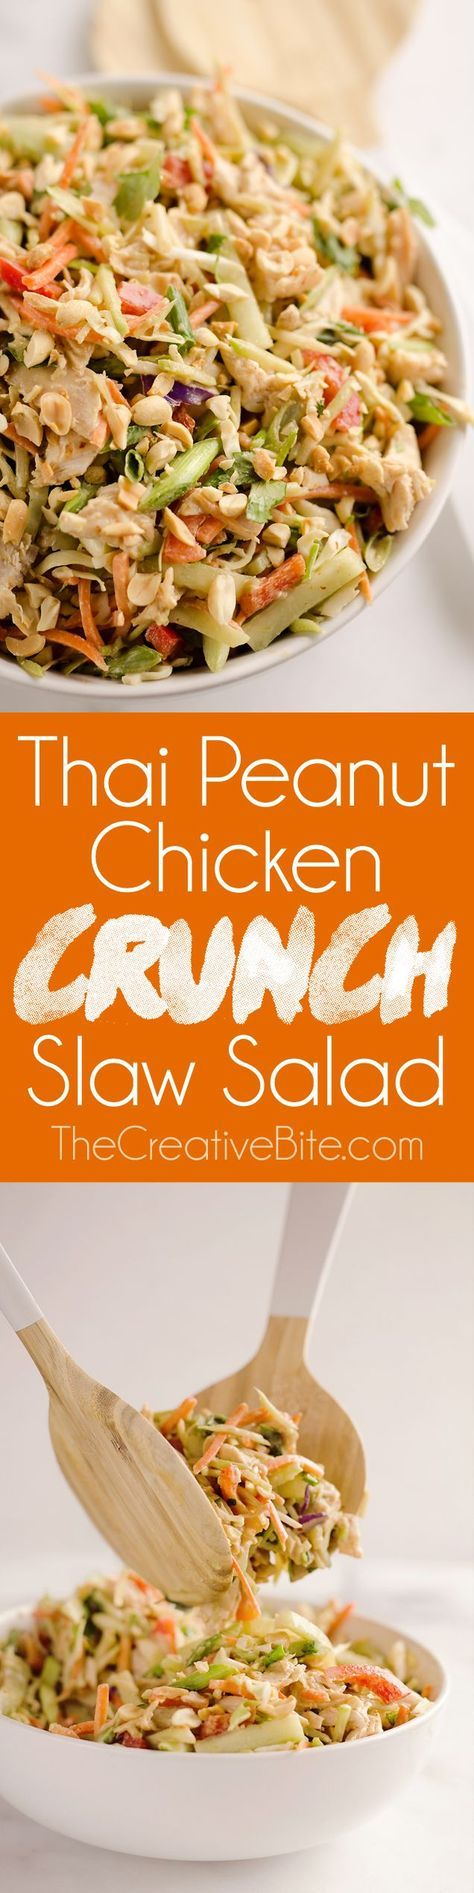 Thai Peanut Chicken Crunch Slaw Salad is an easy & healthy 20 minute salad loaded with fresh vegetables, flavor and crunch for a hearty lunch or dinner!